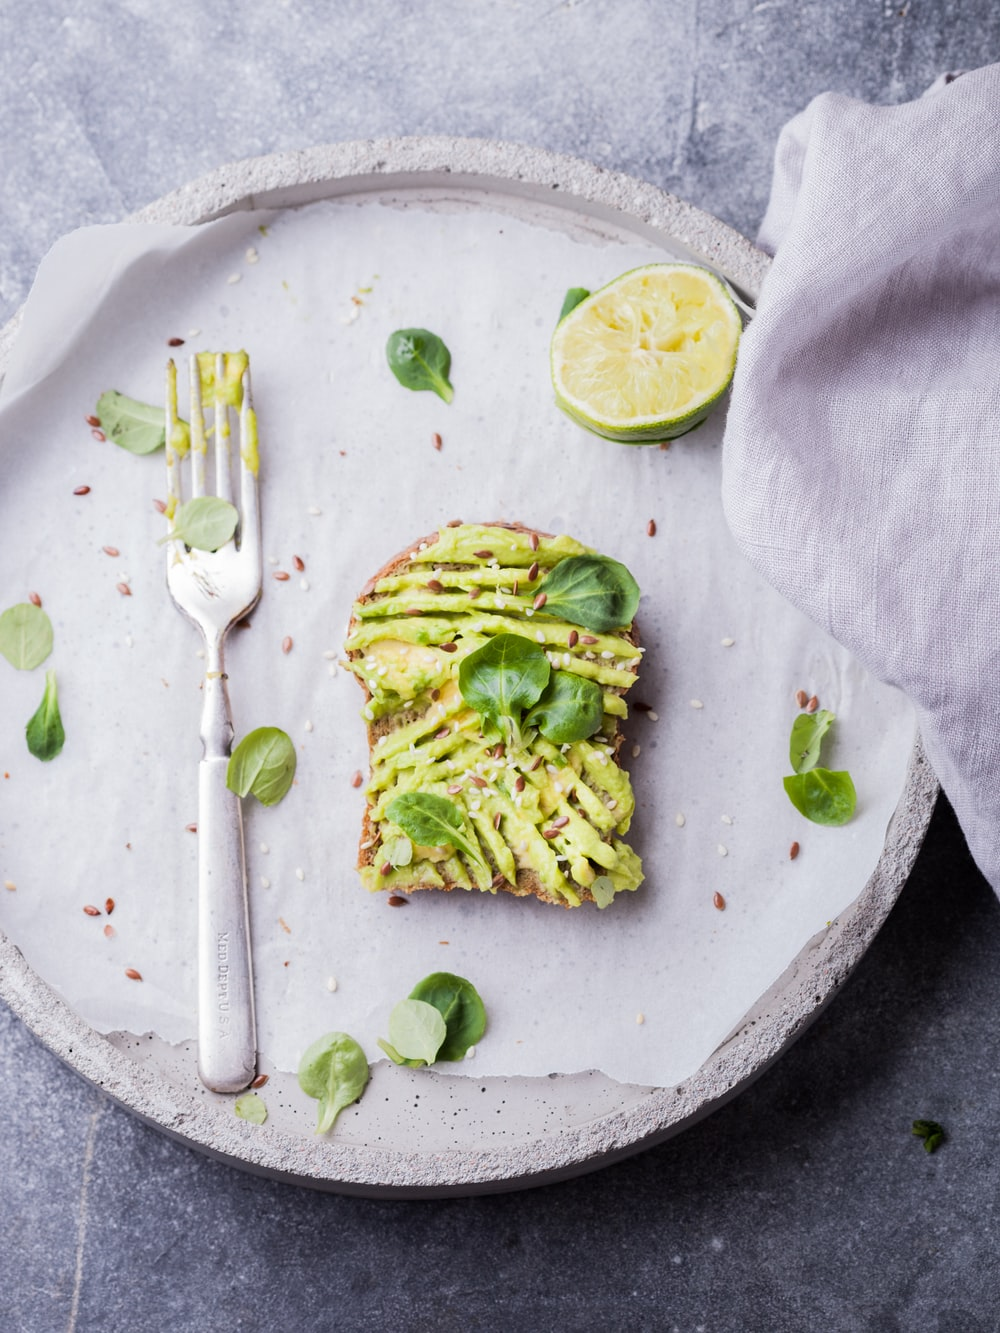 wheat bread with avocado spread beside white plastic spoon and pressed lime on round white plate